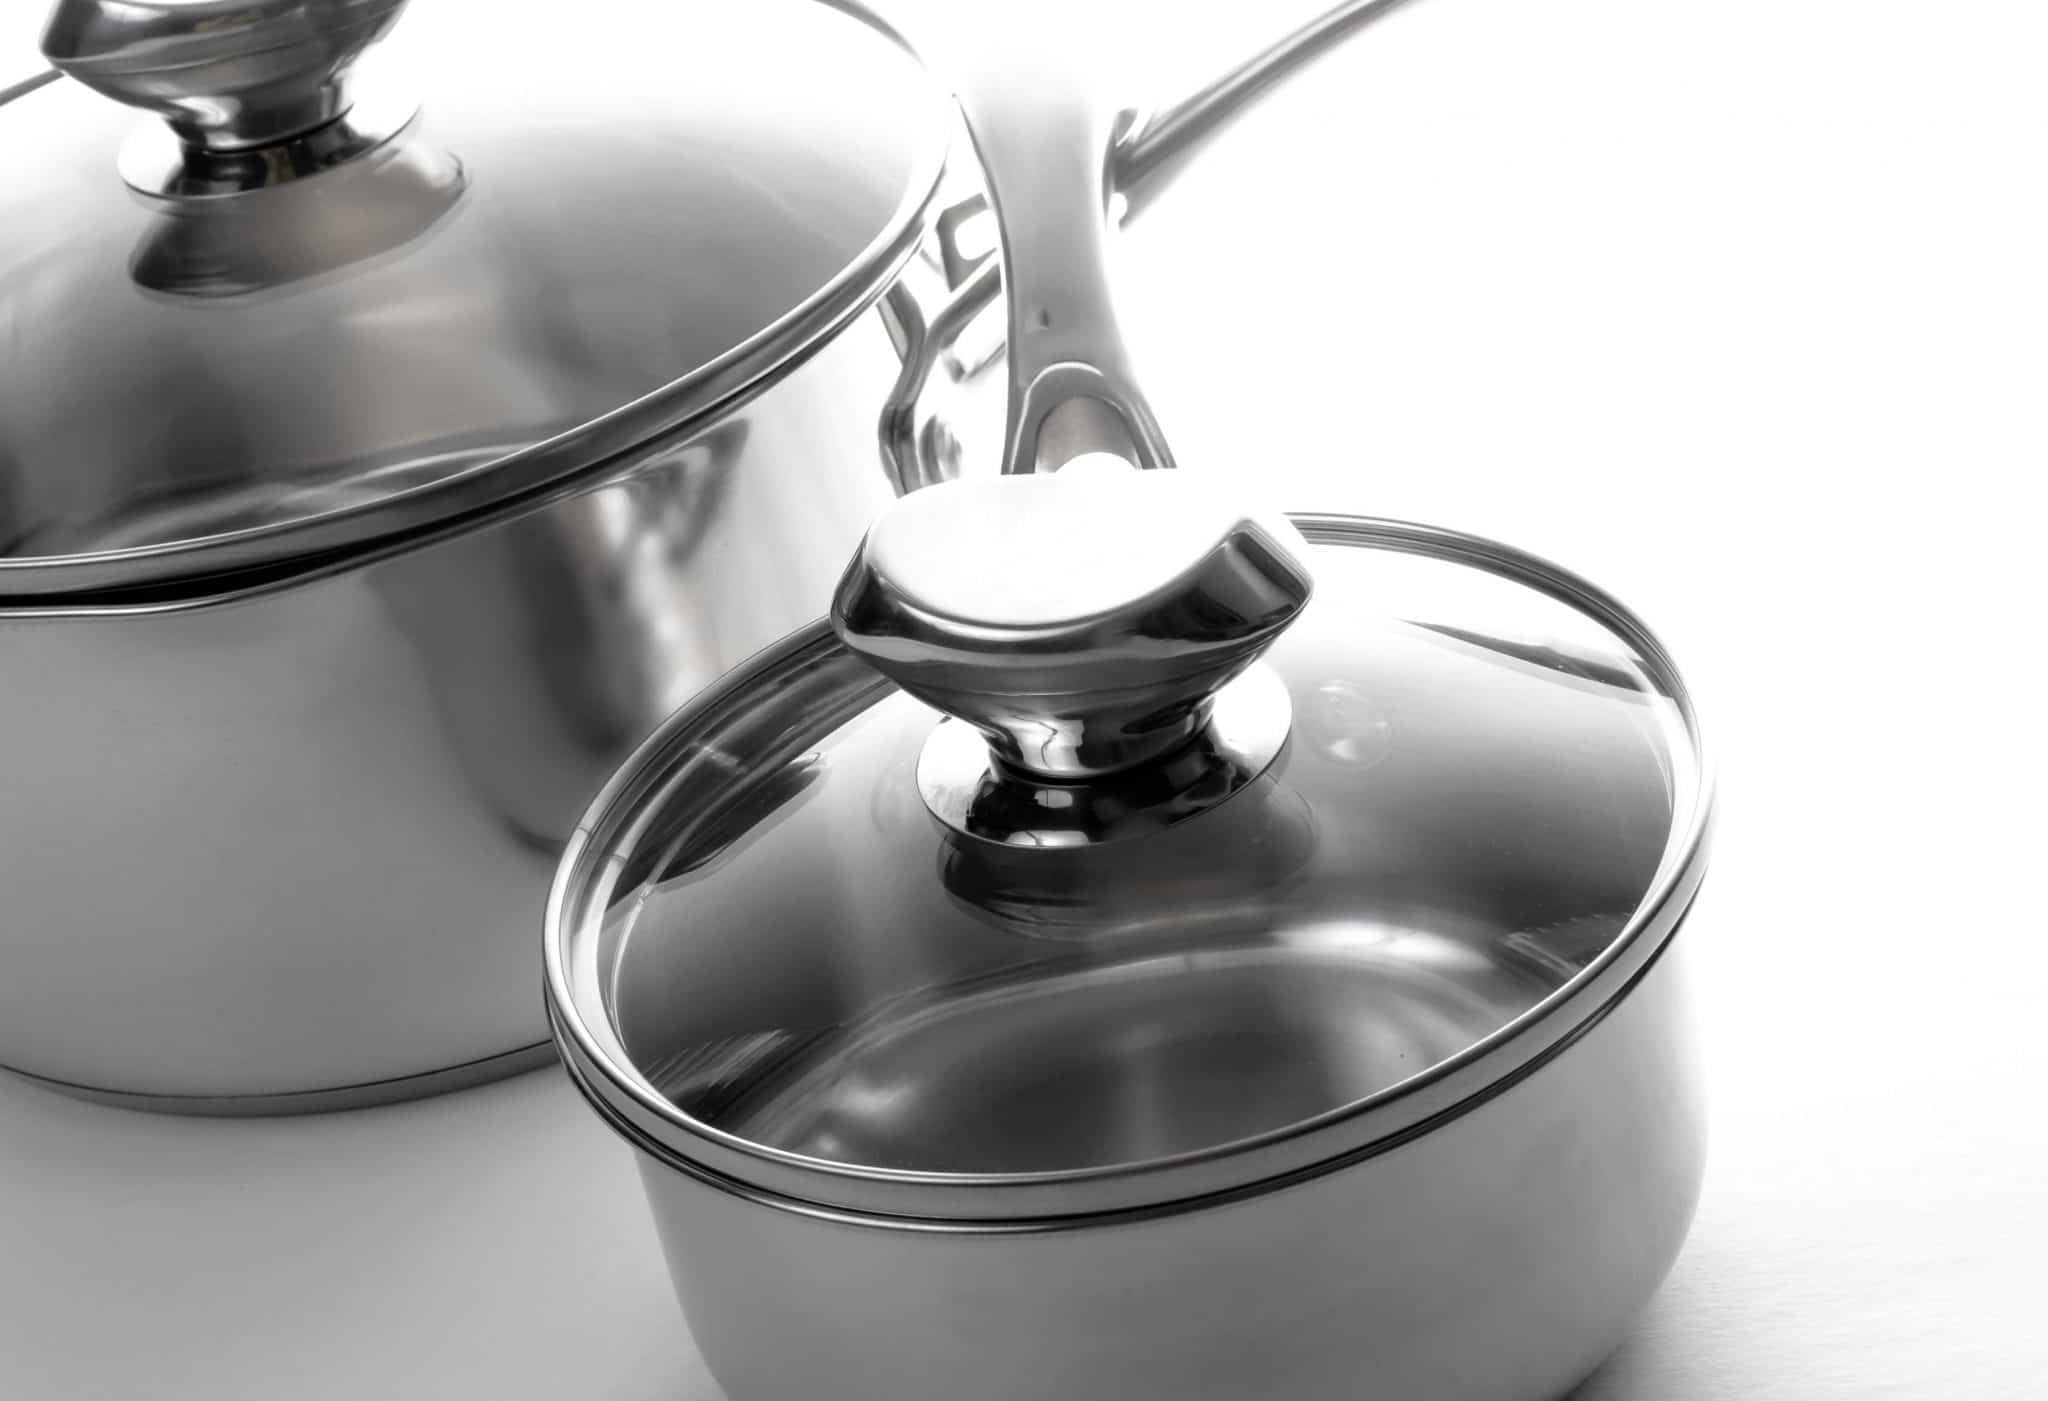 dishwasher safe pots and pans set, best dishwasher safe pots and pans set